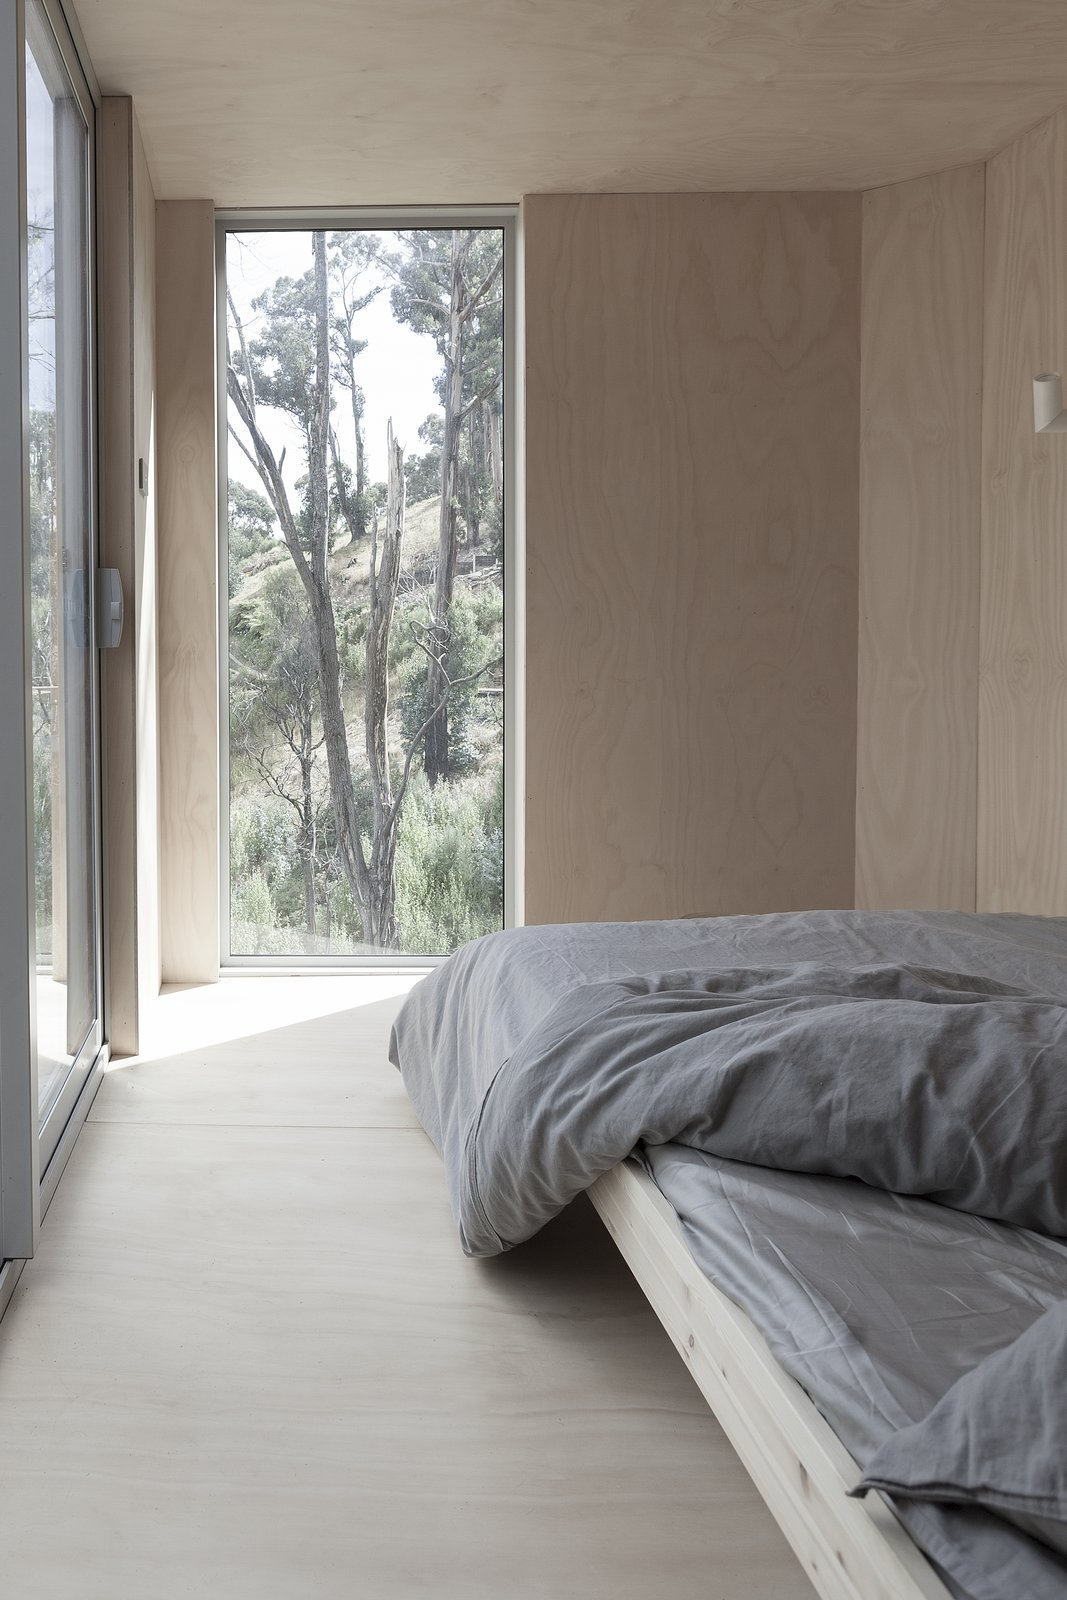 Bedroom, Bed, Plywood Floor, and Wall Lighting Since artwork was passed over for the beauty of the outdoors, windows create light and movement in the two bedrooms.  Photo 6 of 8 in This Off-Grid Container Home in Australia Disappears in Nature